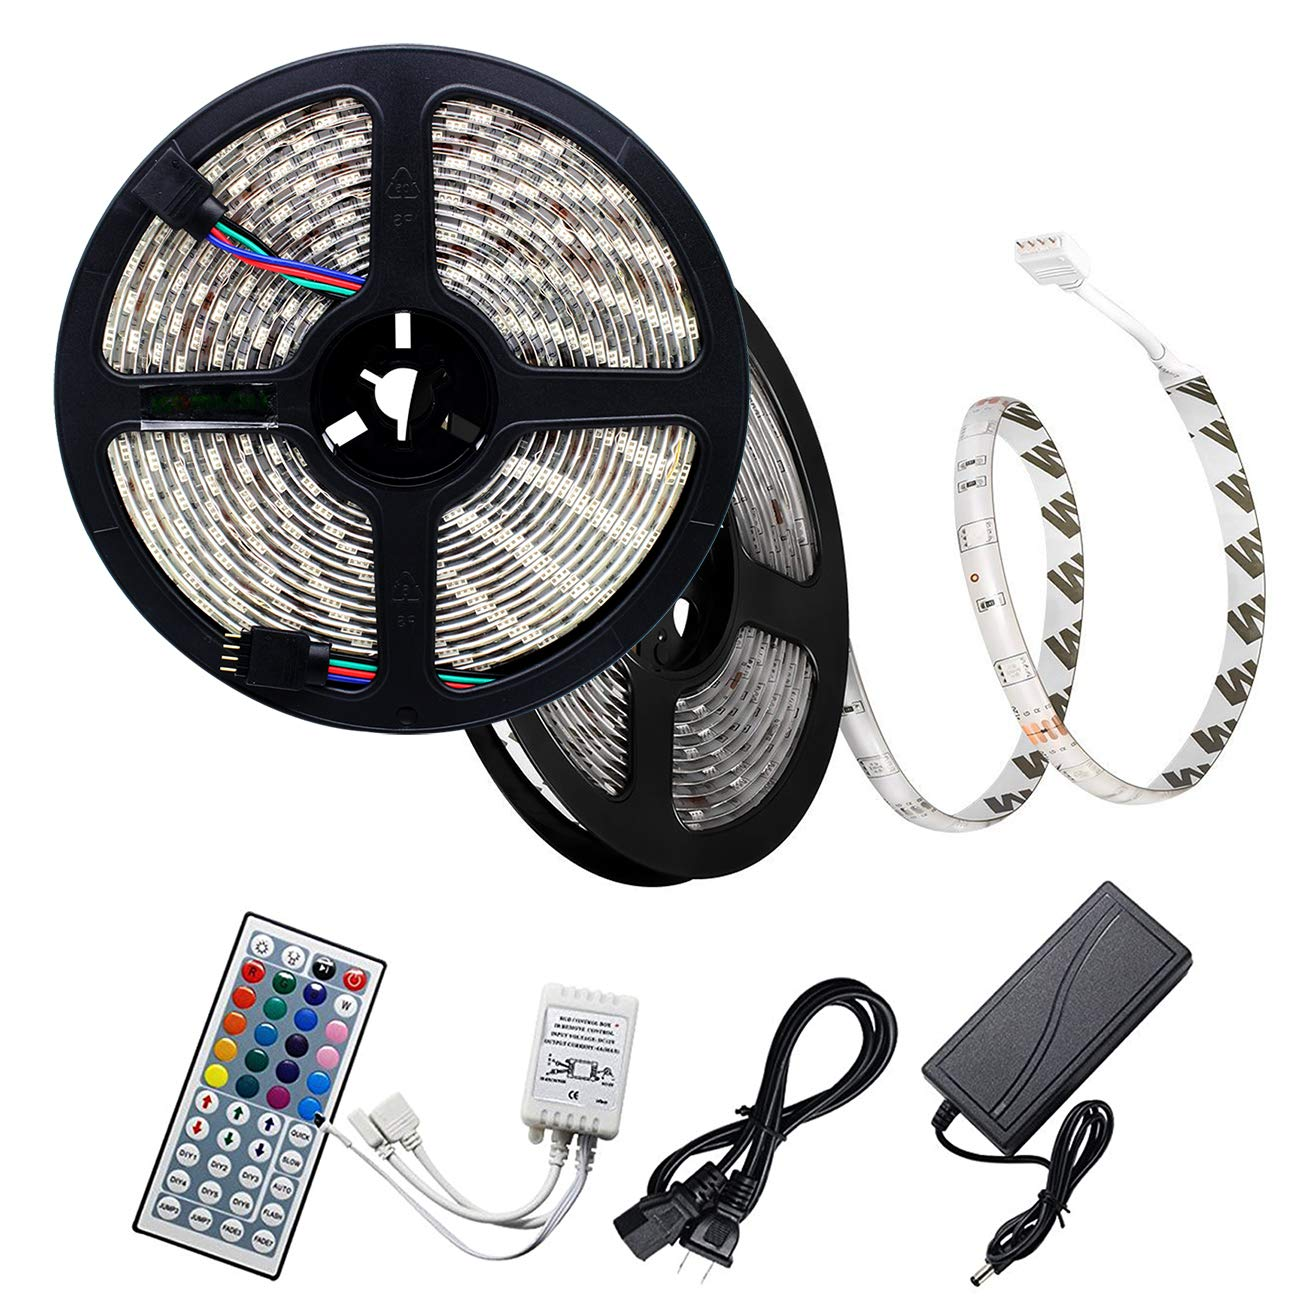 Rowrun 32.8ft/10m LED Strip Lights Color Changing 300 LED SMD 5050 DC 12V 6A Waterproof Light Strip Full Kit 44-Key RGB Remote Controller Adapter IR Control Box Indoor/Outdoor